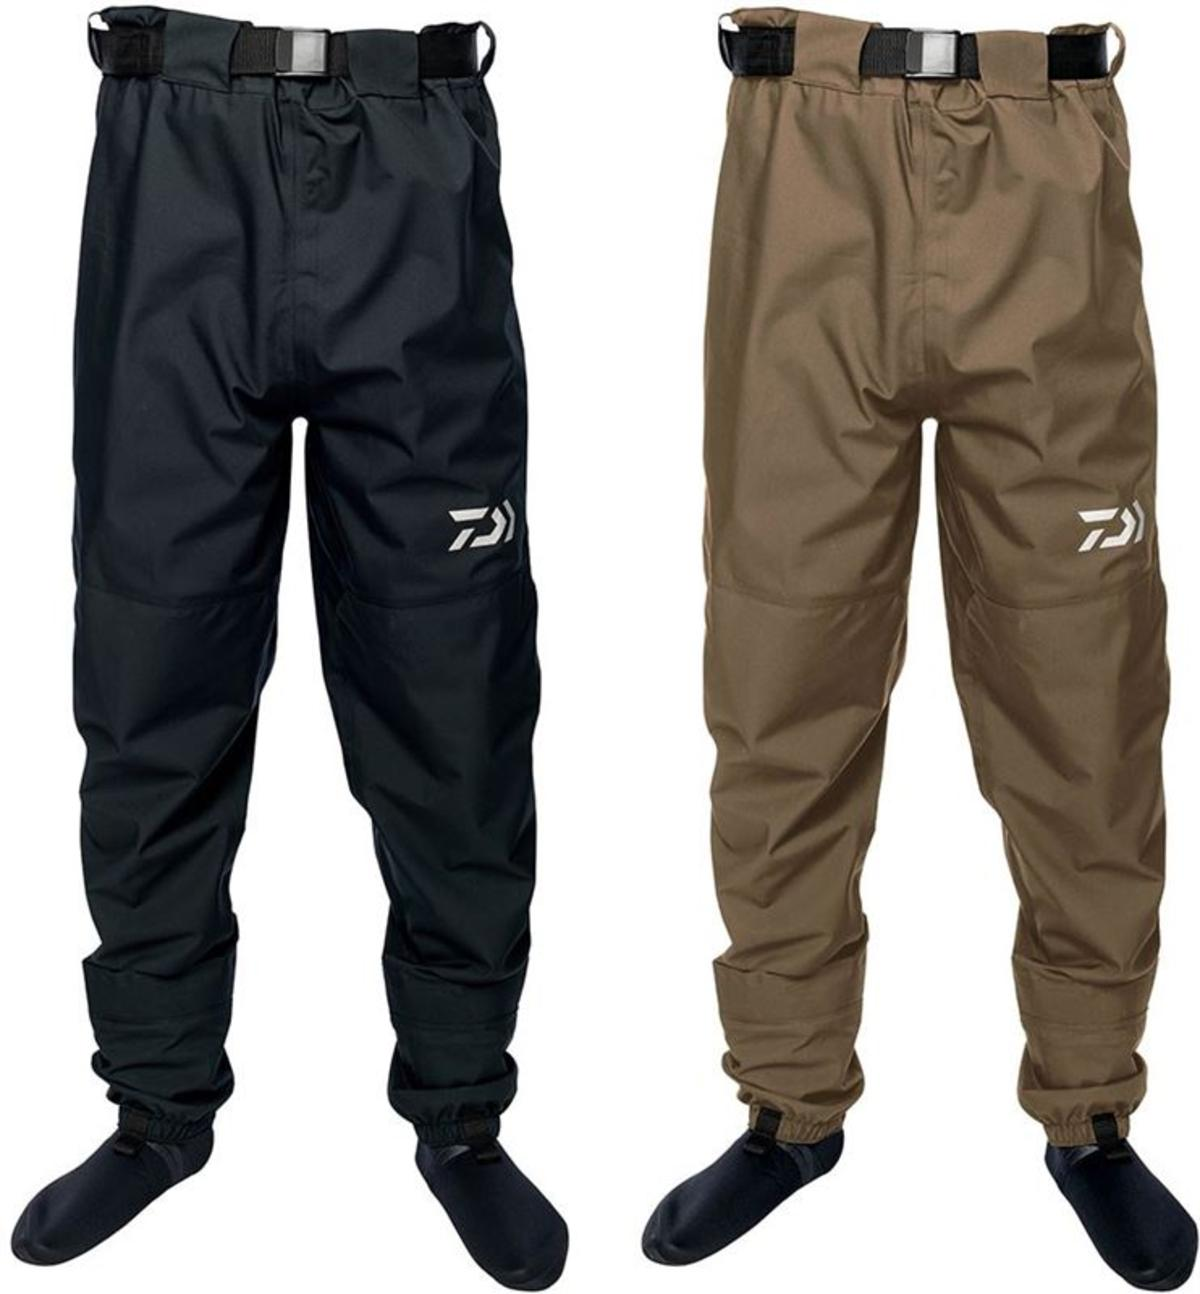 Clearance New Daiwa Breathable Waist Waders  - All Sizes